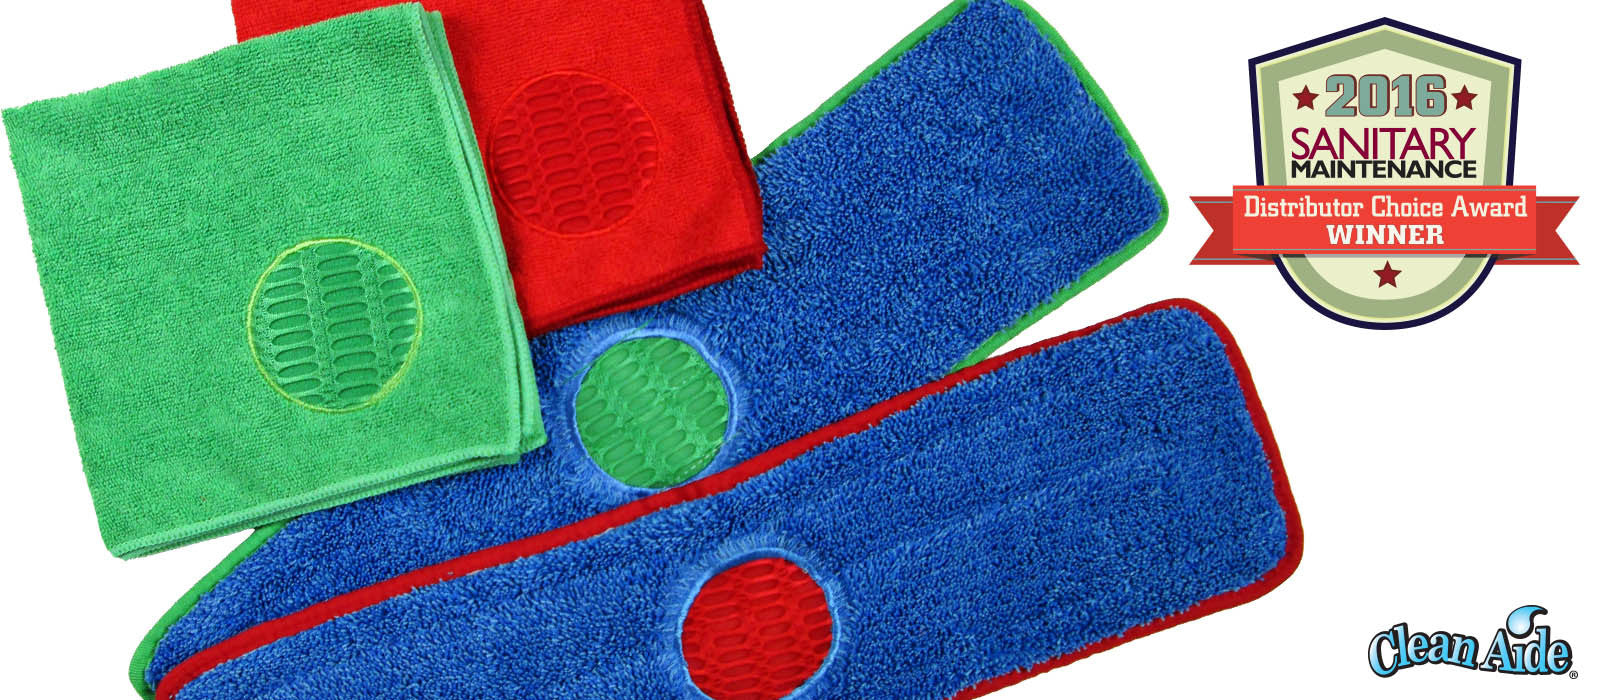 Spot towels and mop pads by CleanAide